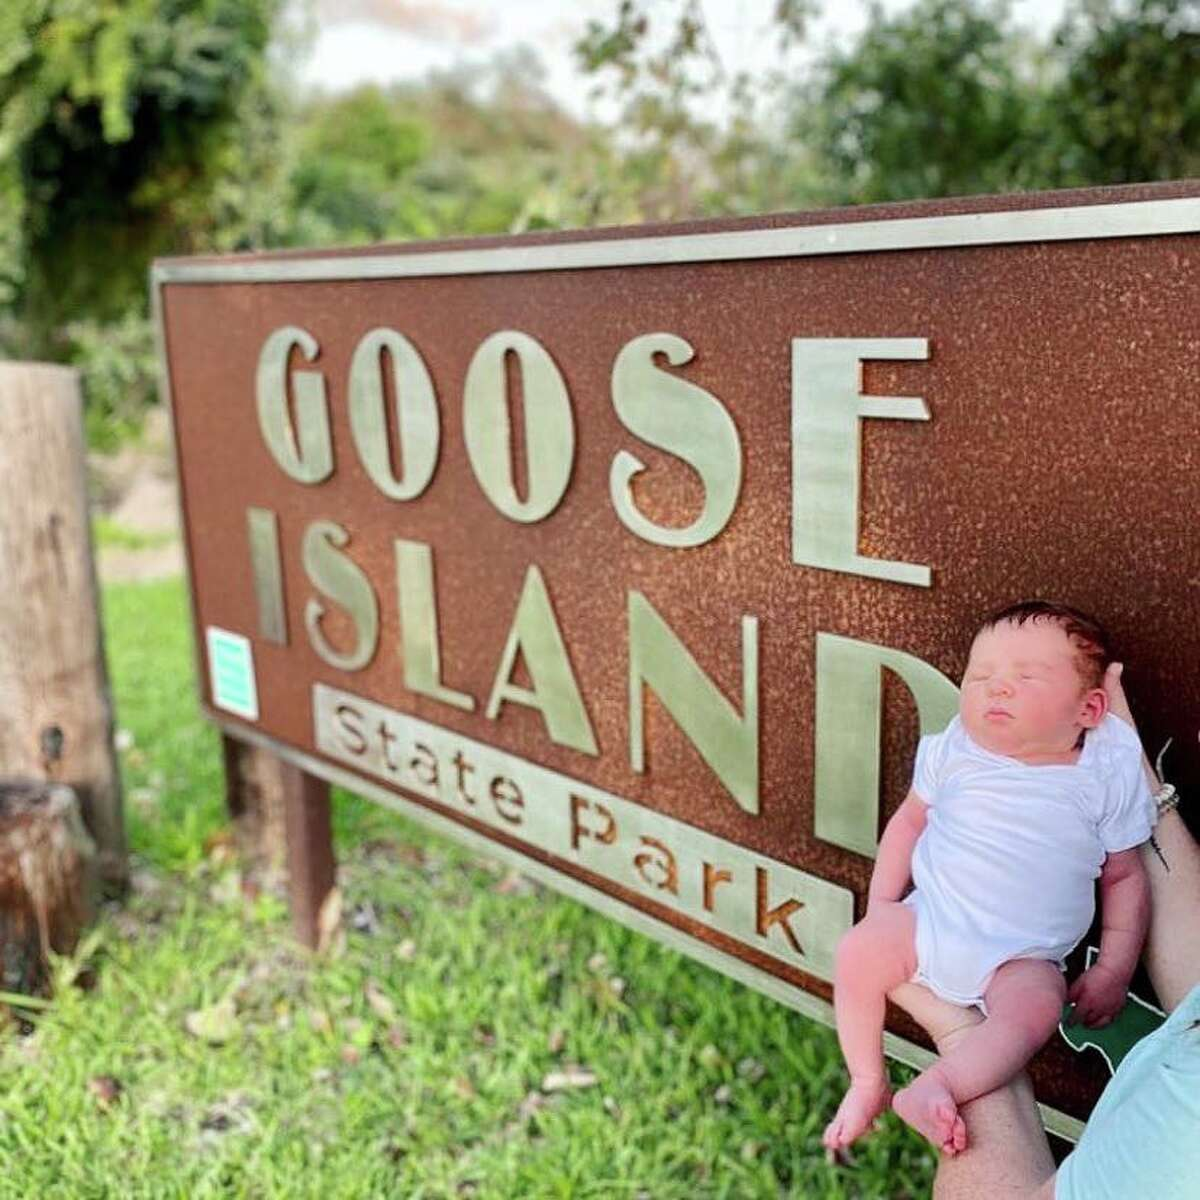 Texas mother gives birth while camping at RV at Goose Island State Park.